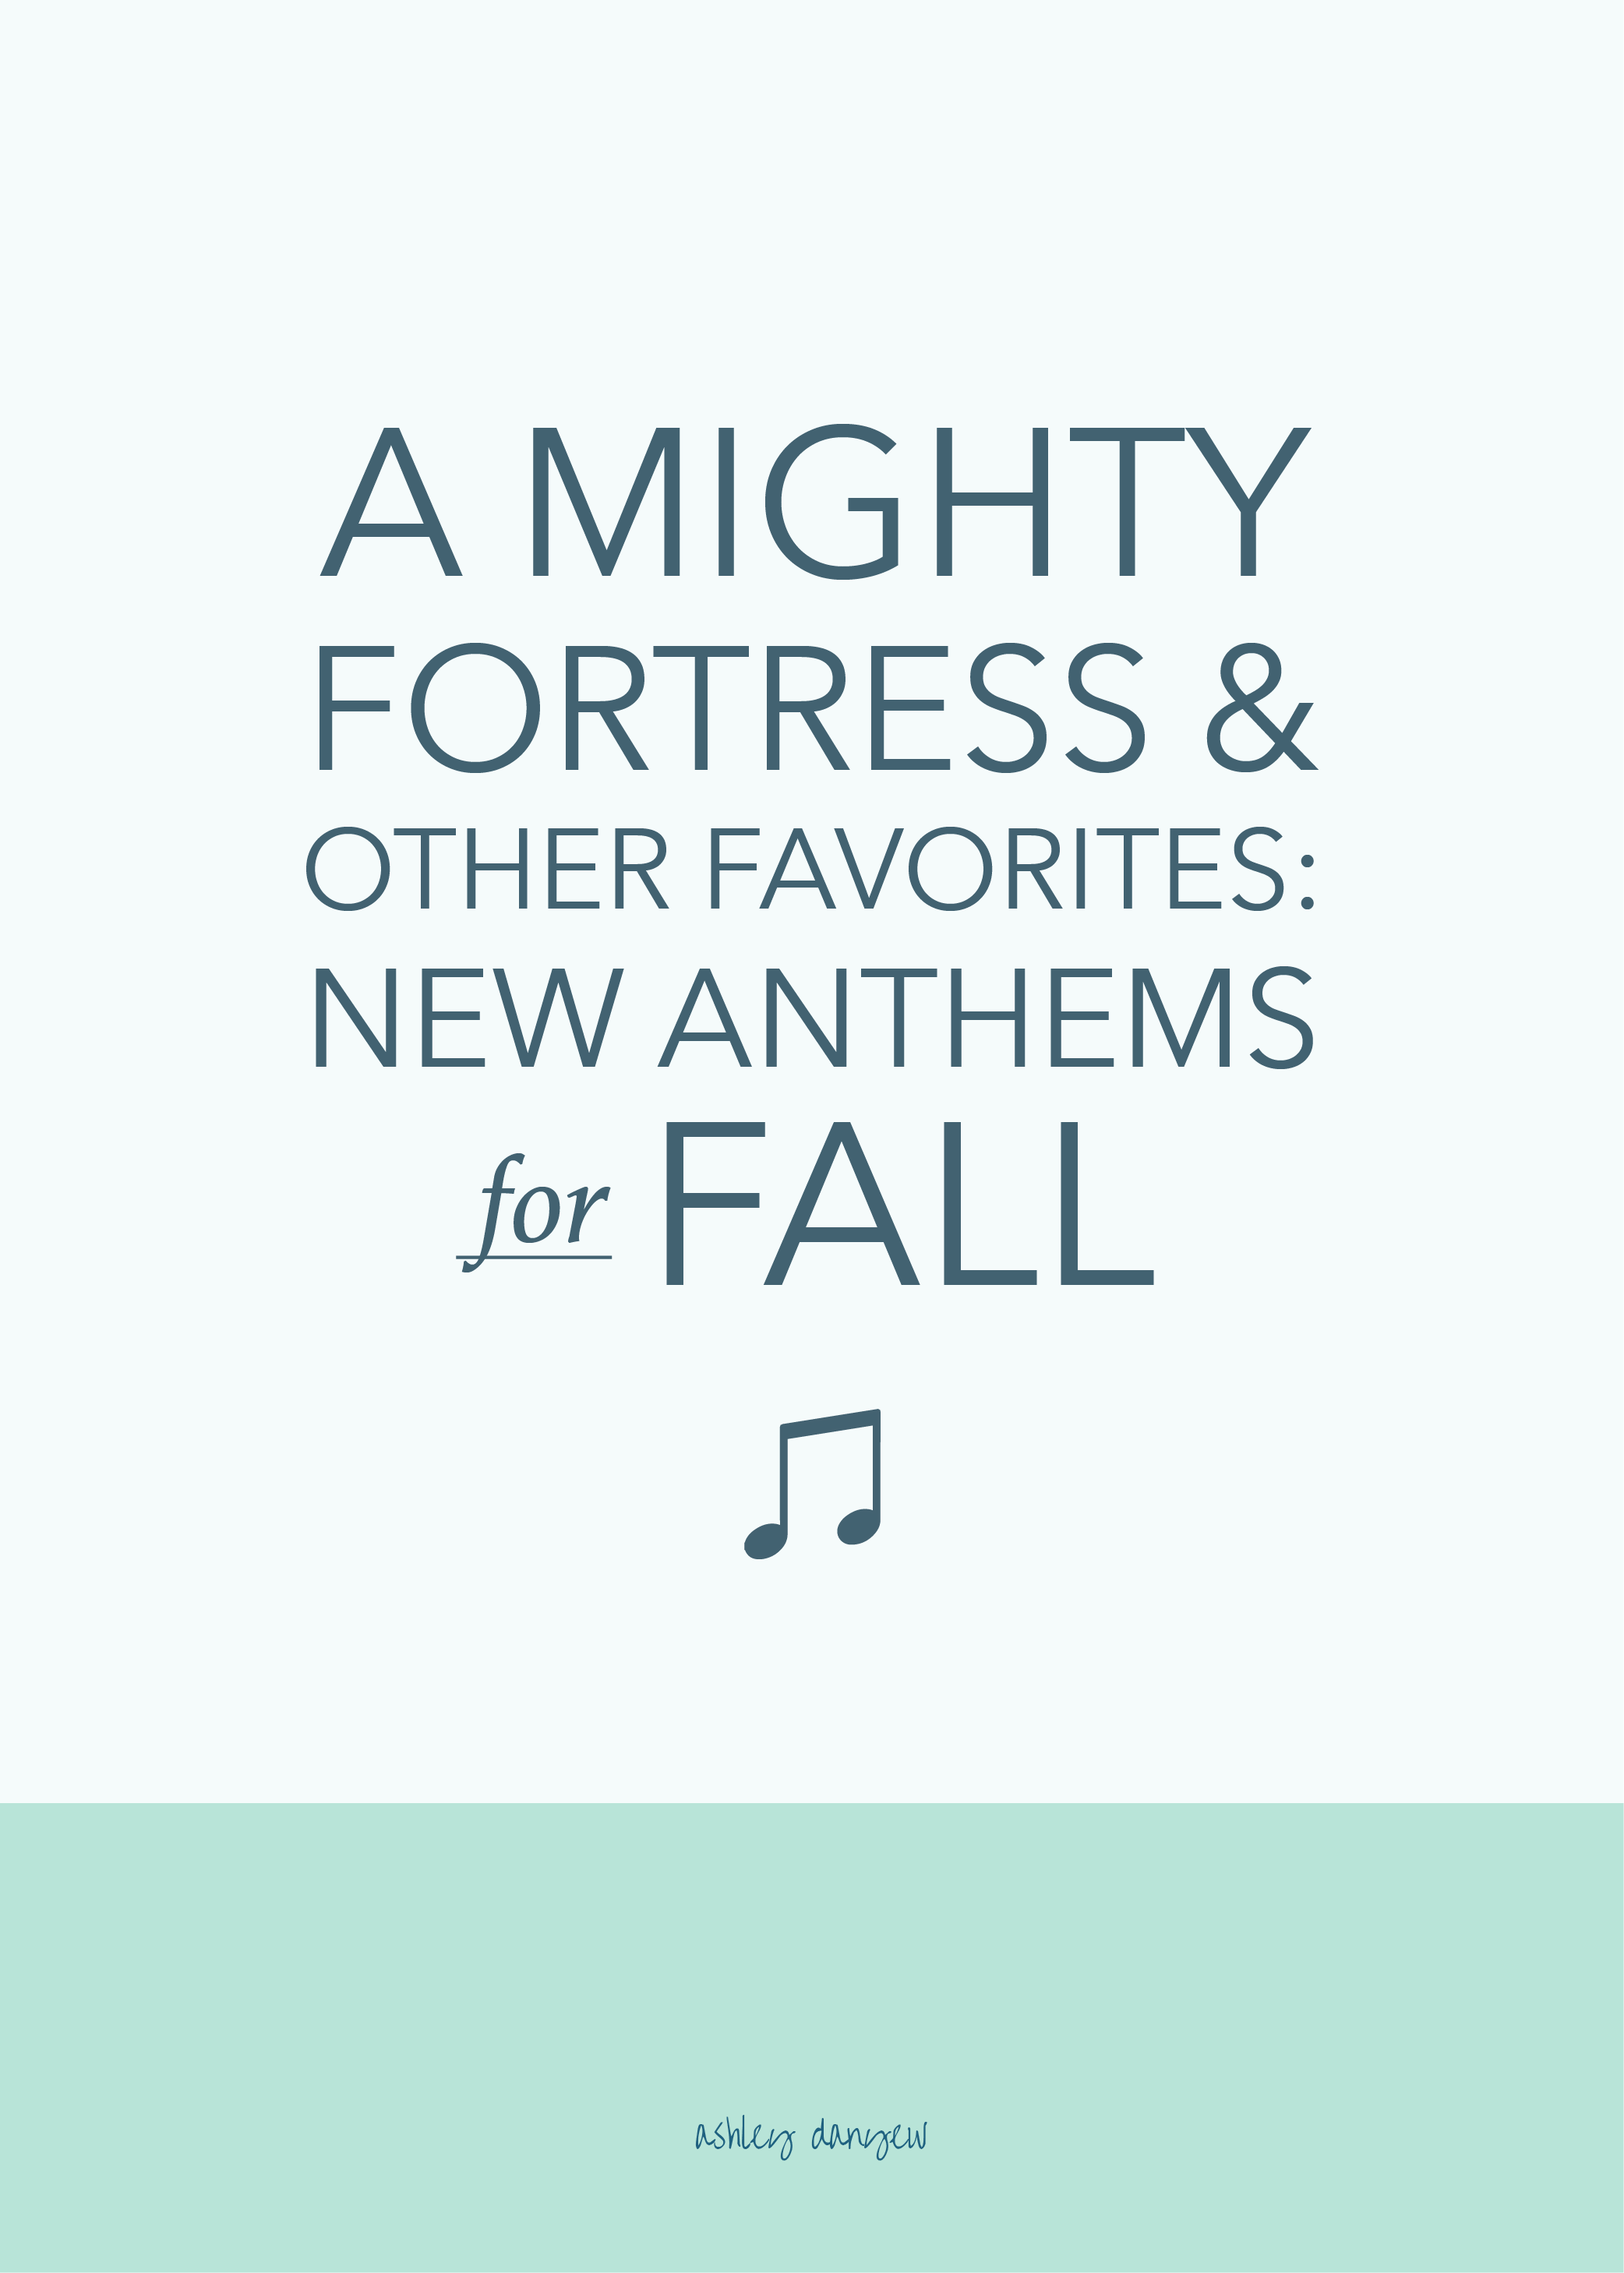 A Mighty Fortress and Other Favorites - New Anthems for Fall-36.png